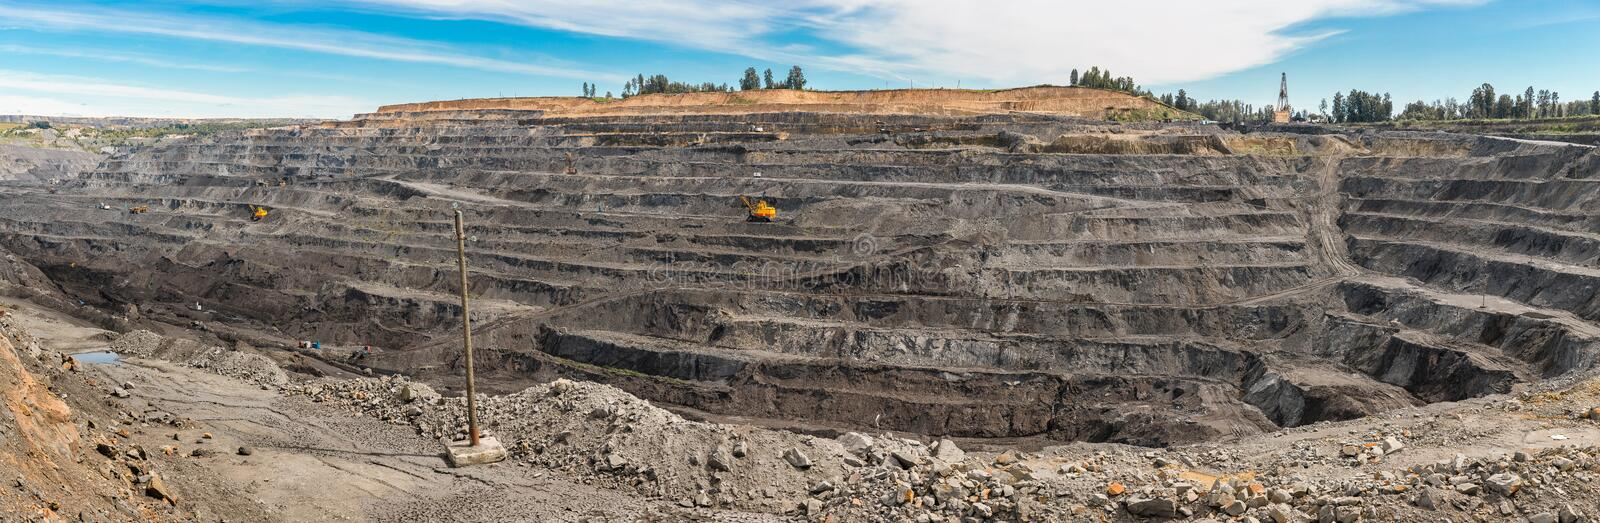 Panoramic aerial view of abandoned coal mine. Canned quarry. Open coal mining, Antarcite mining. Pit on coal mining by open way royalty free stock images